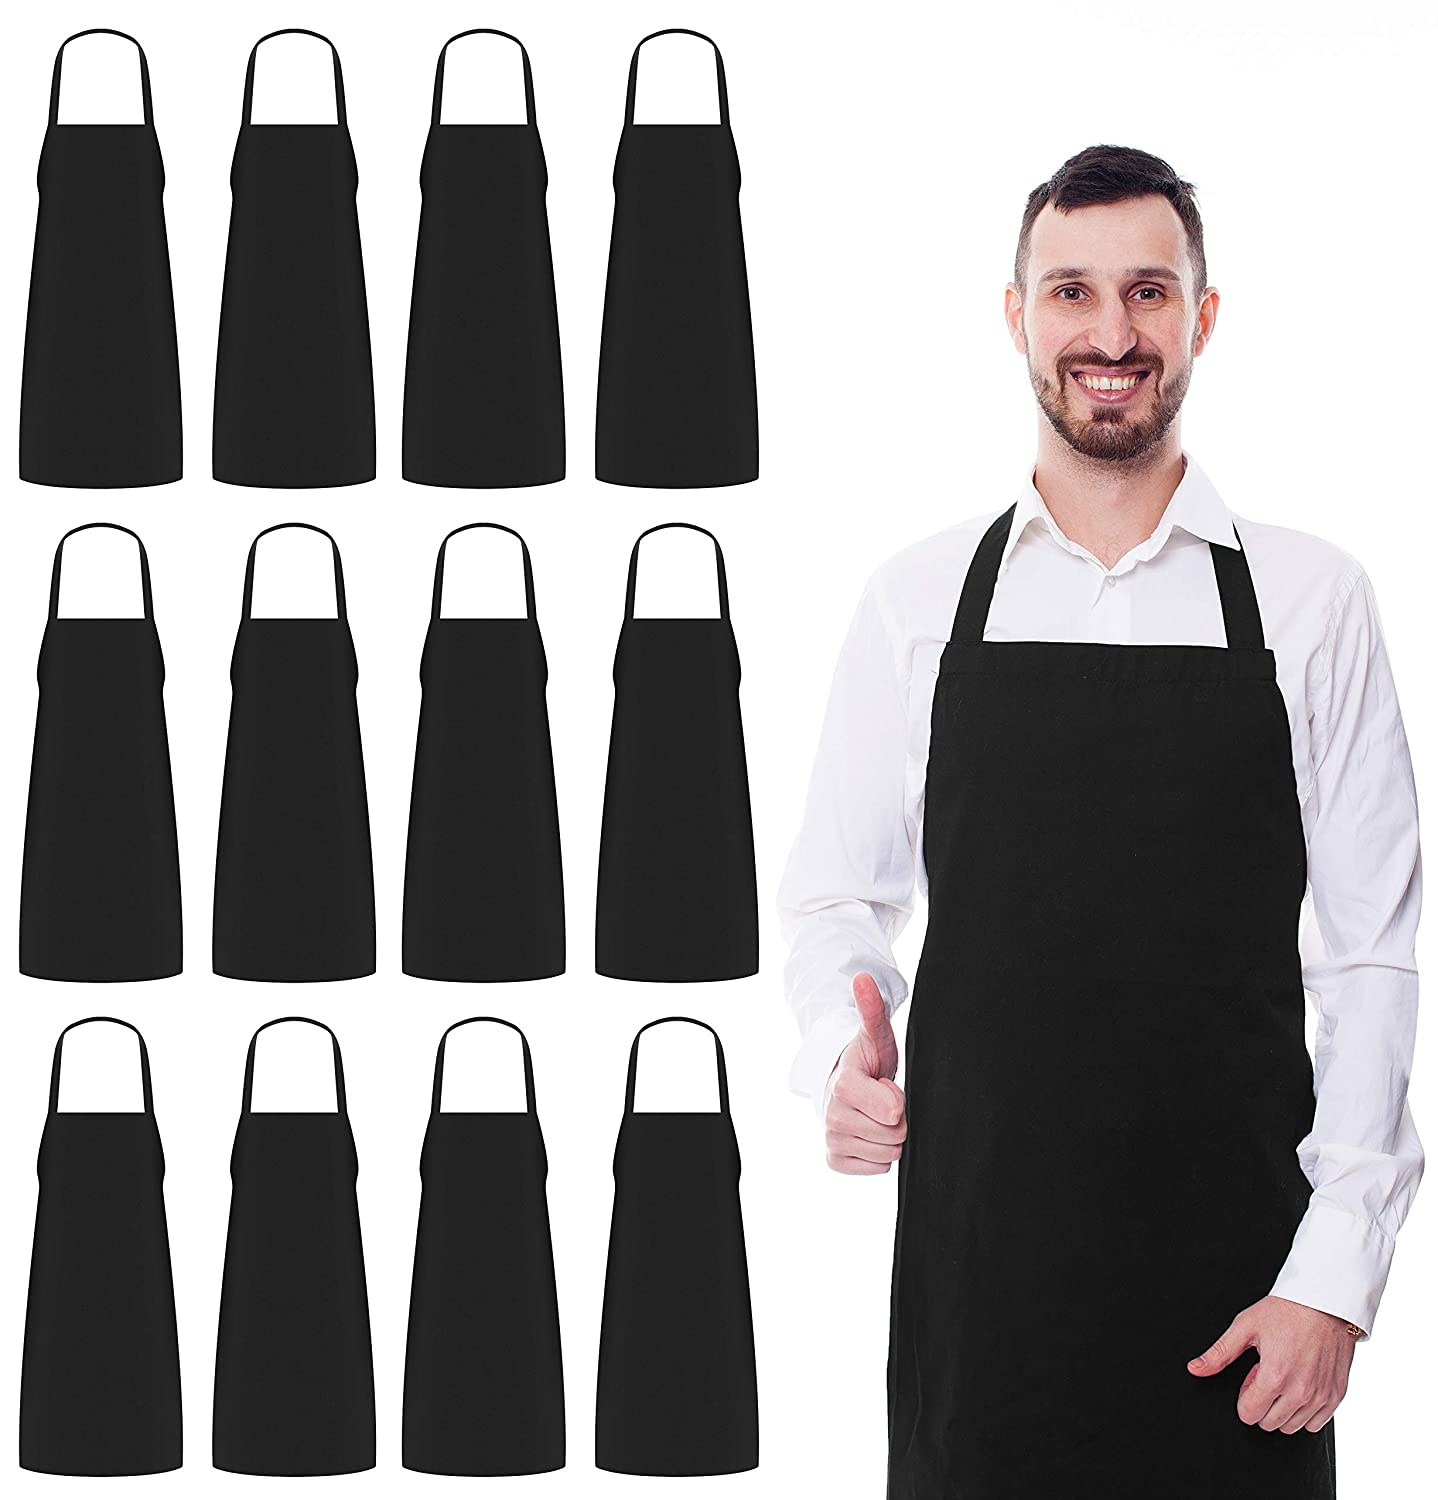 39c9d66072b Amazon.com: Utopia Kitchen Bib Aprons Bulk, 12 Pack Aprons, Black: Kitchen  & Dining